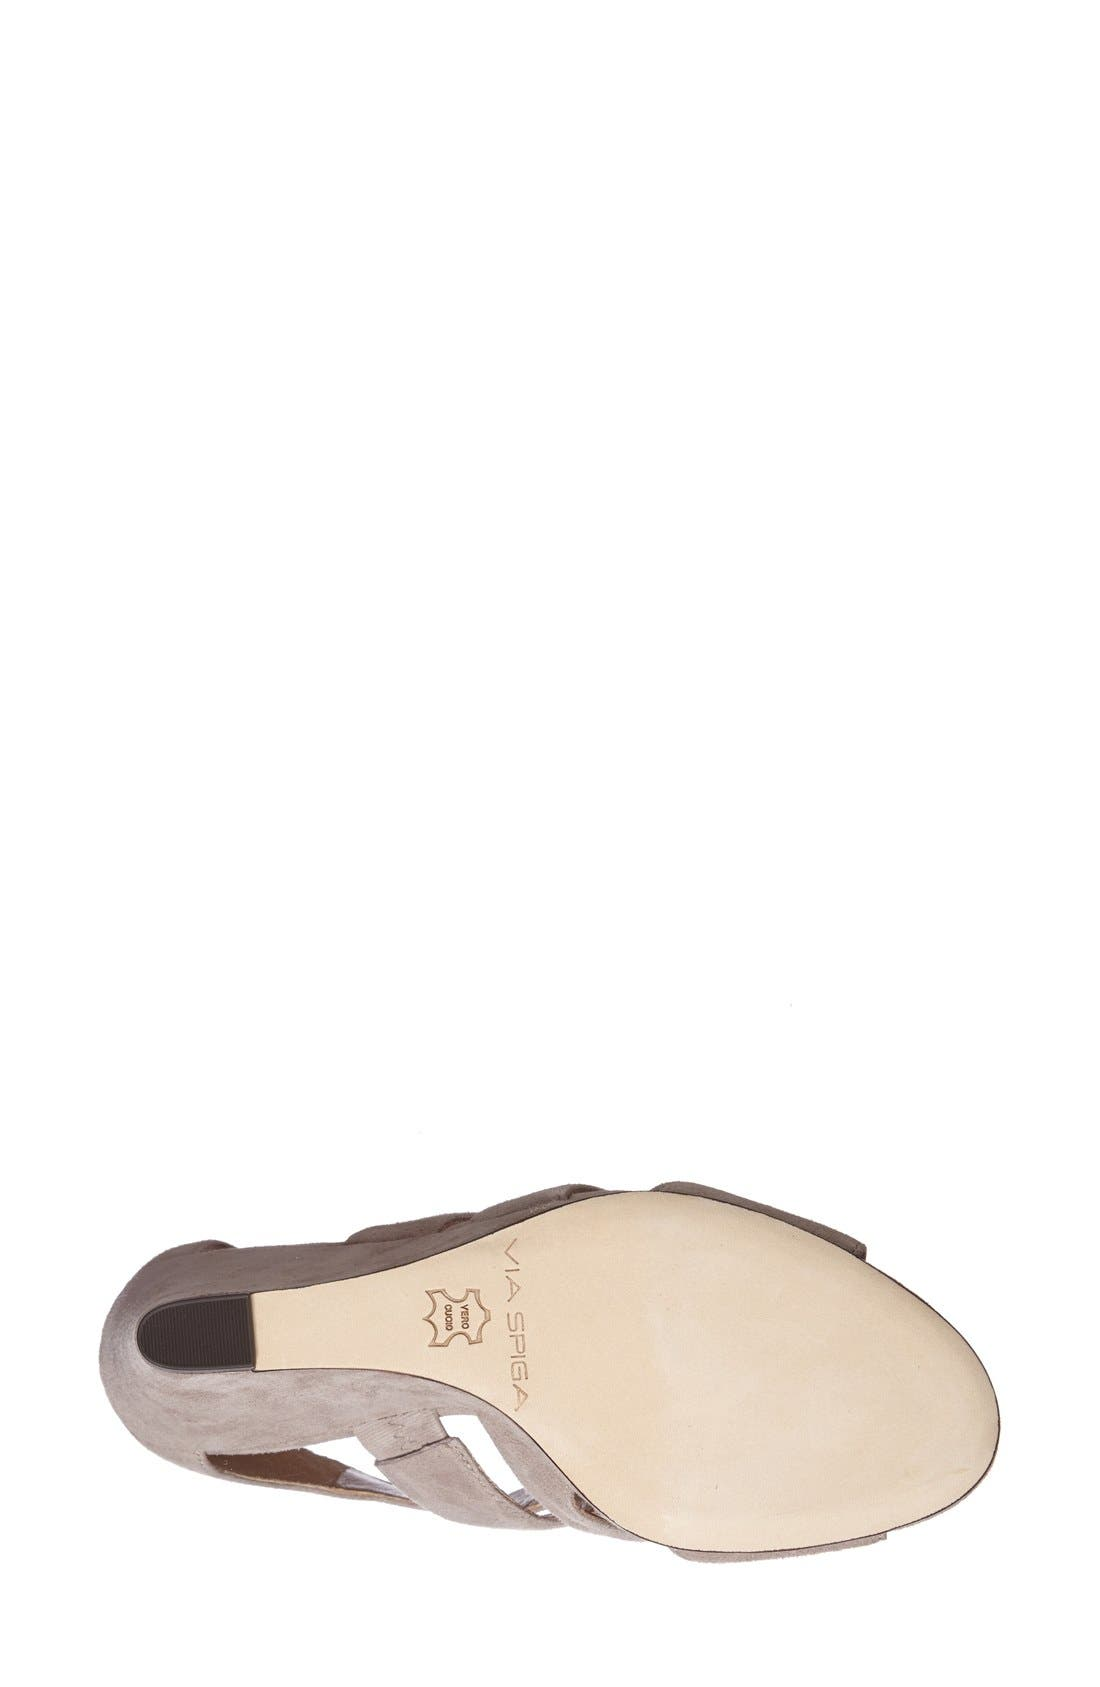 Alternate Image 3  - Via Spiga 'Fion' Wedge Sandal (Women)